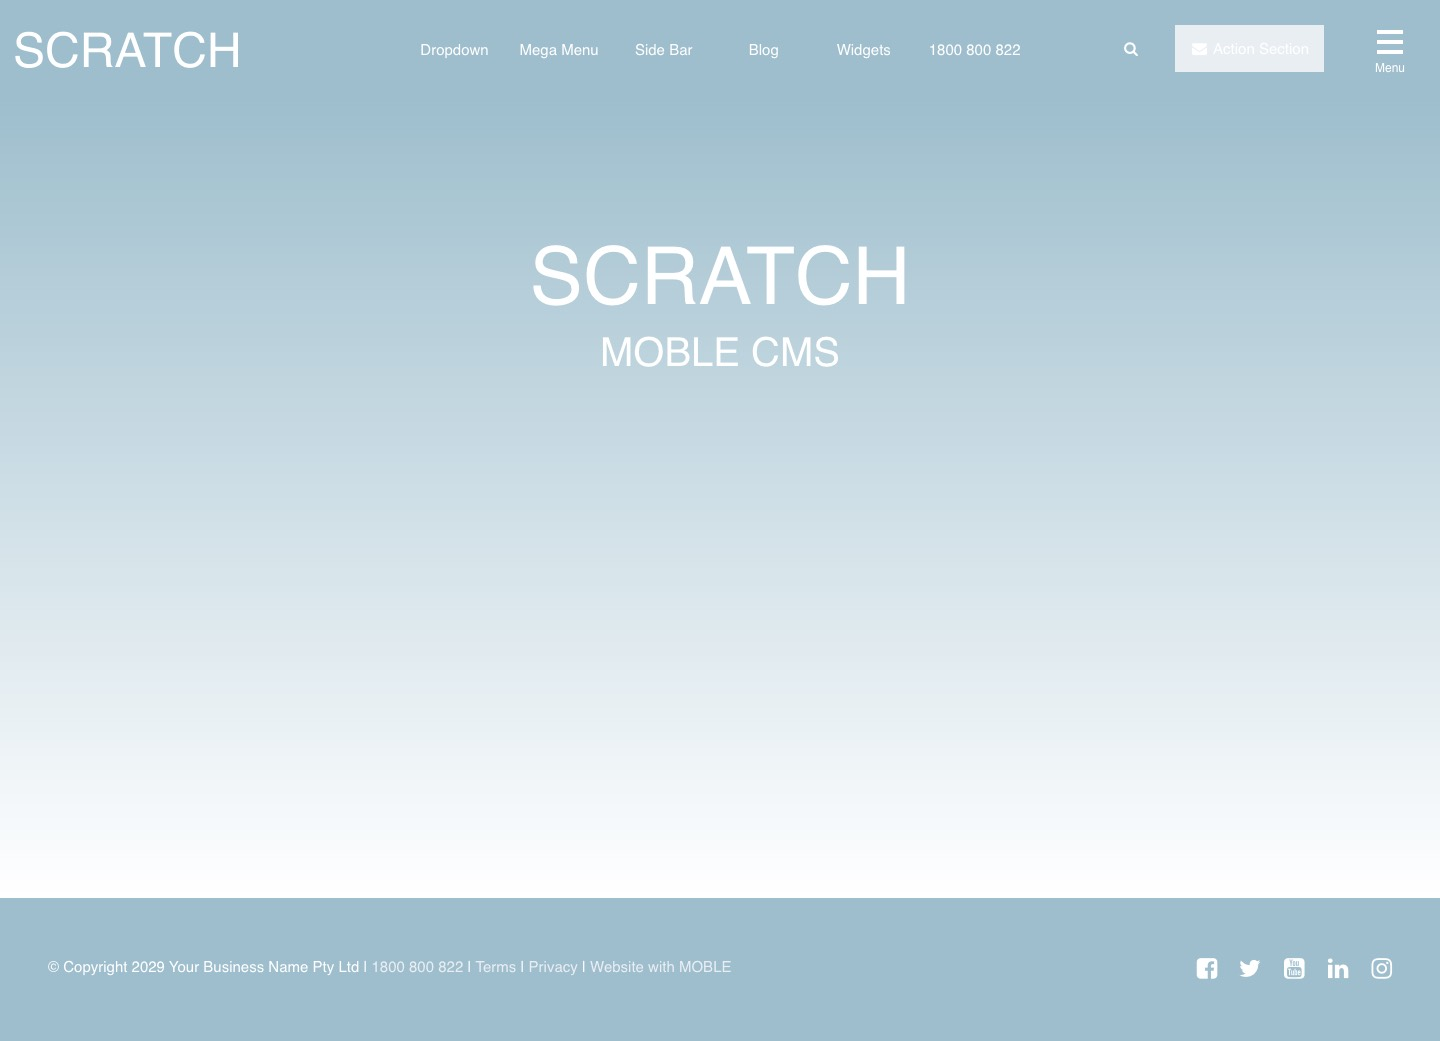 Scratch Website Design